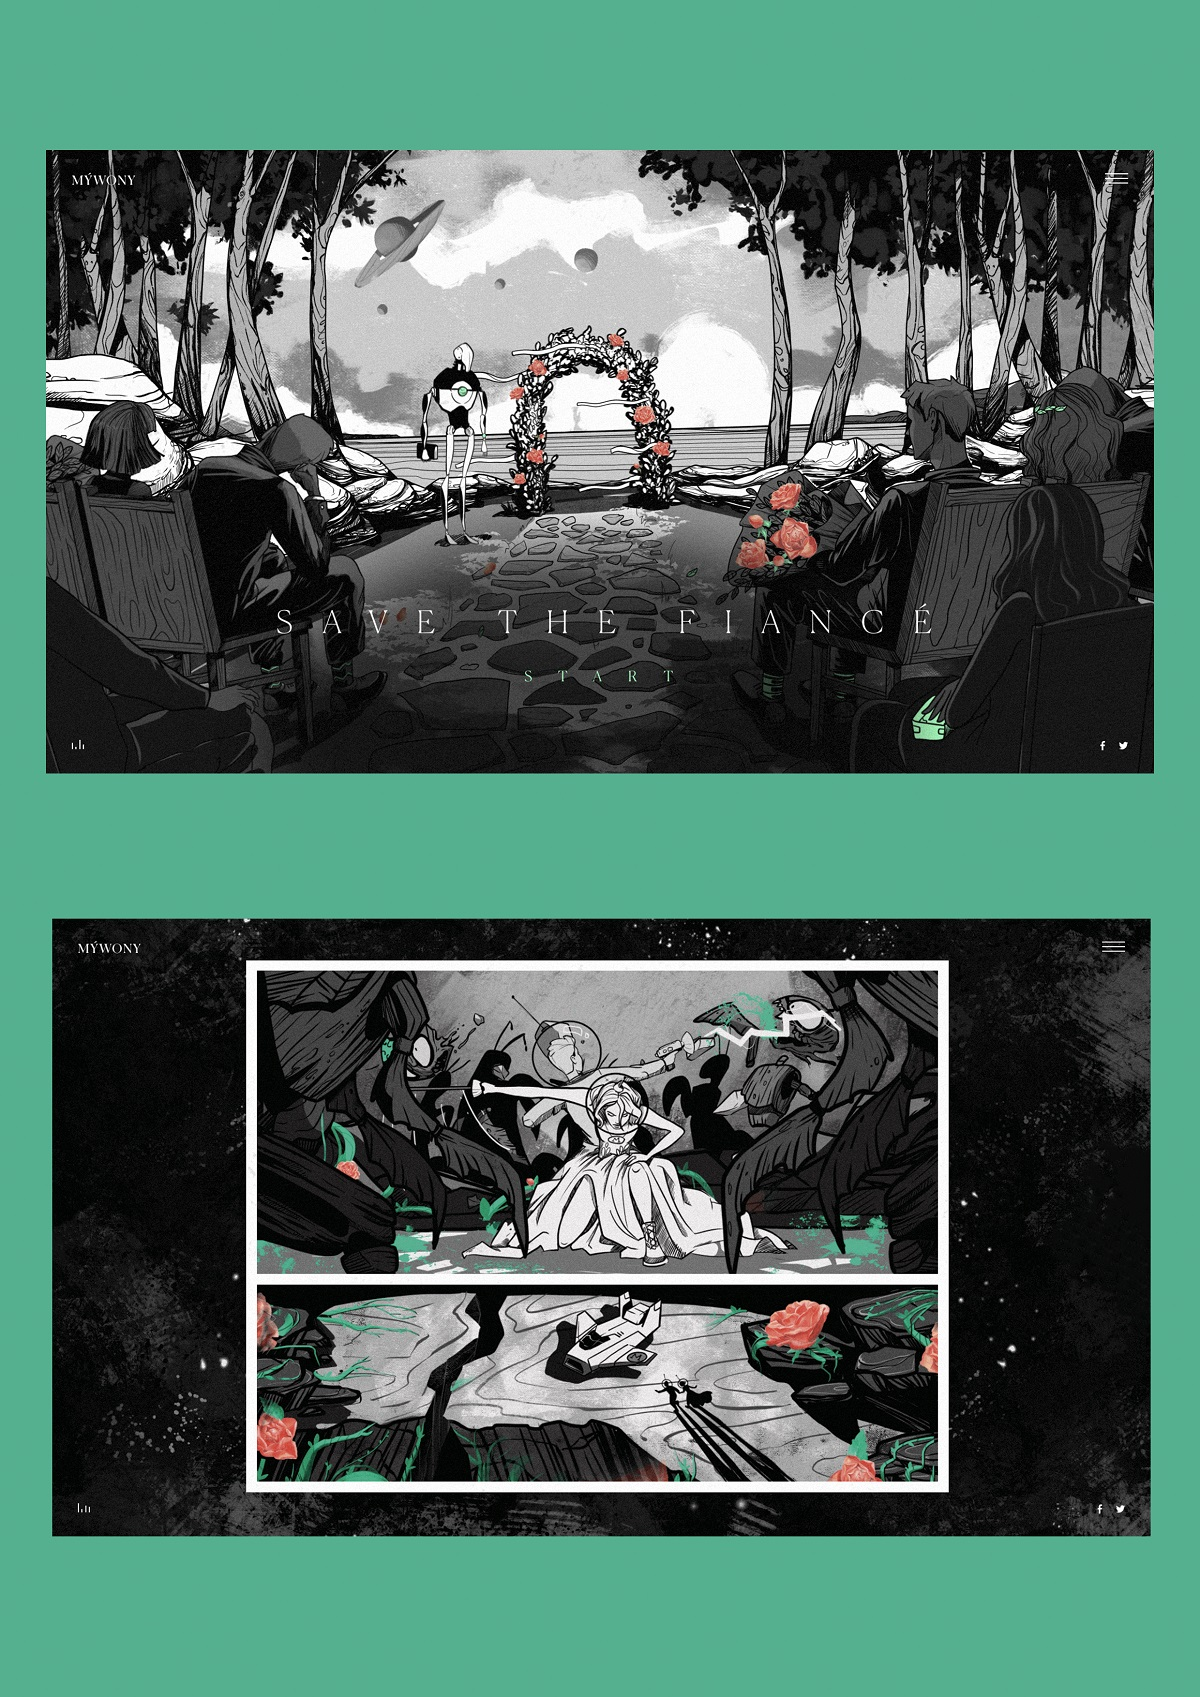 mywony storyboard illustrations